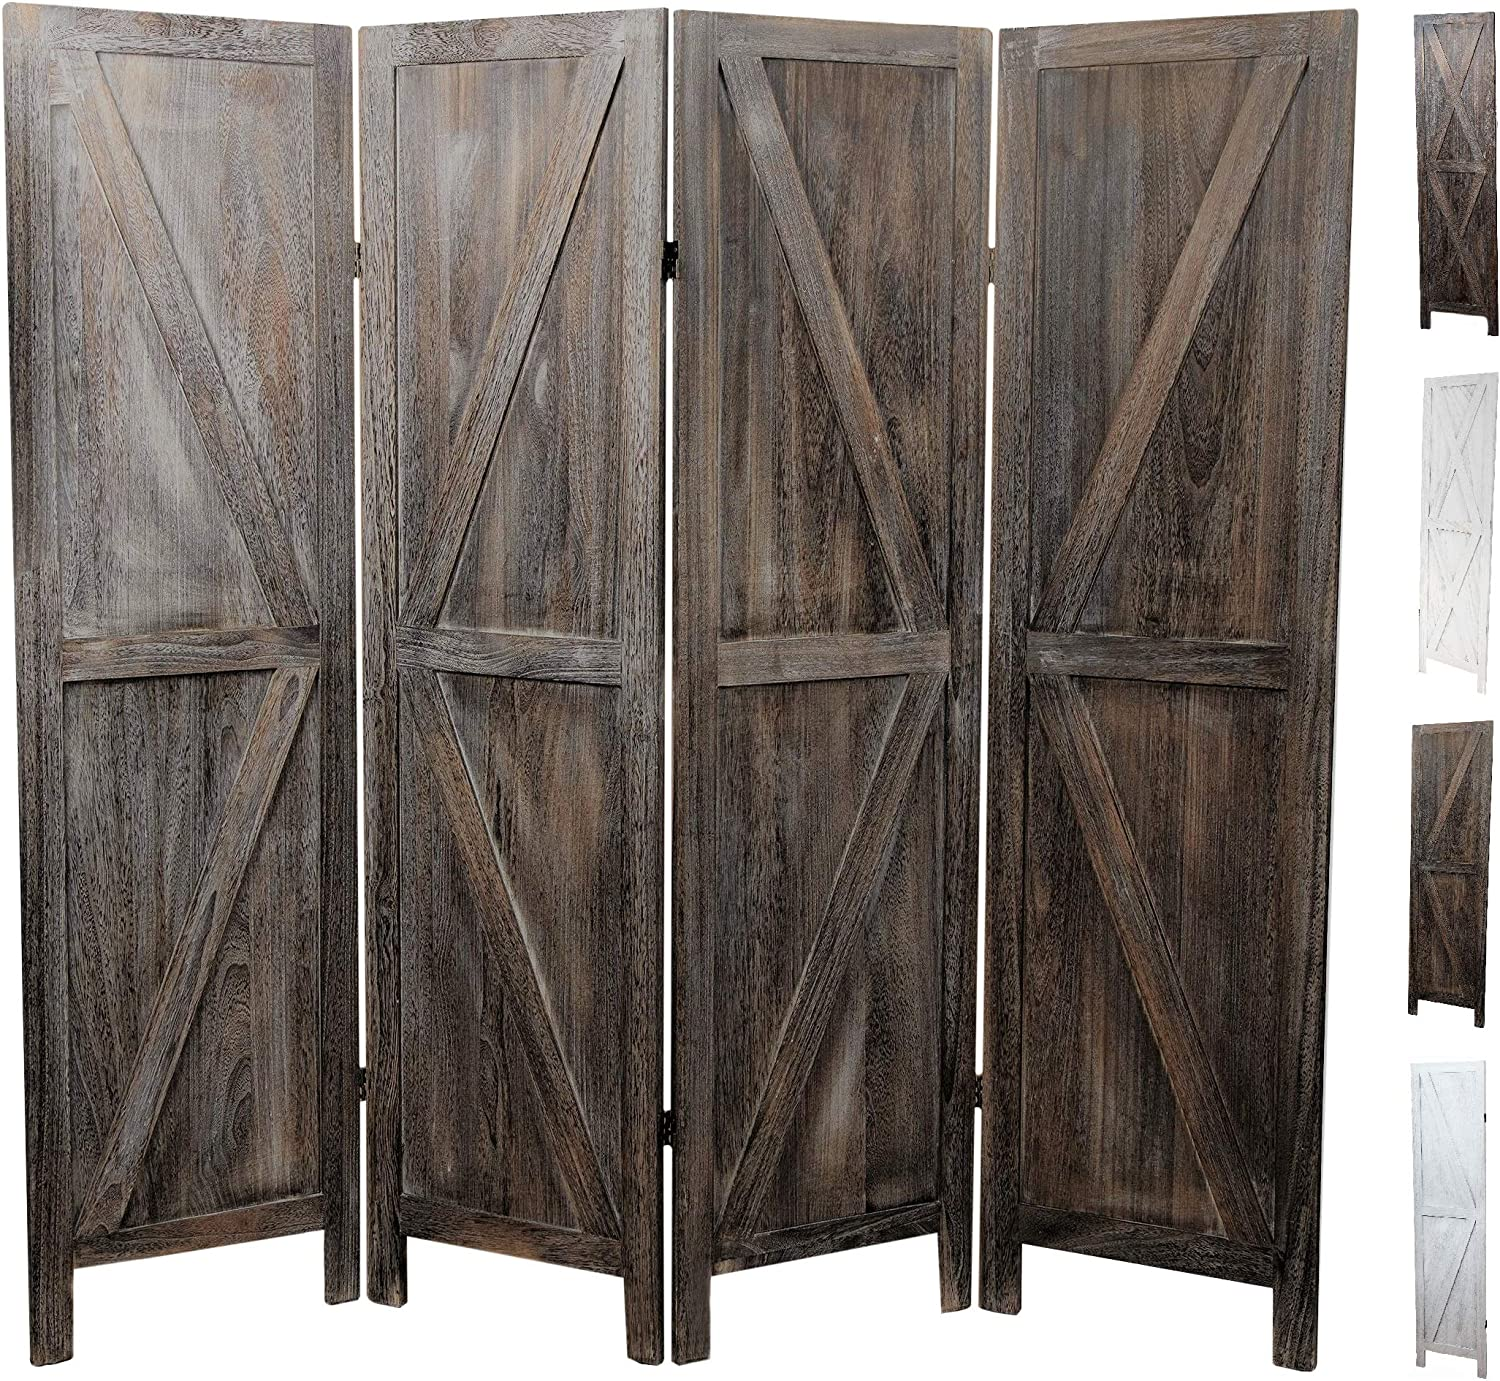 Premium Home Room Divider: Room dividers and Folding Privacy Screens, Privacy Screen, Partition Wall dividers for Rooms, Room Separator, Temporary Wall, Folding Screen, Rustic Barnwood (Barnwood): Furniture & Decor